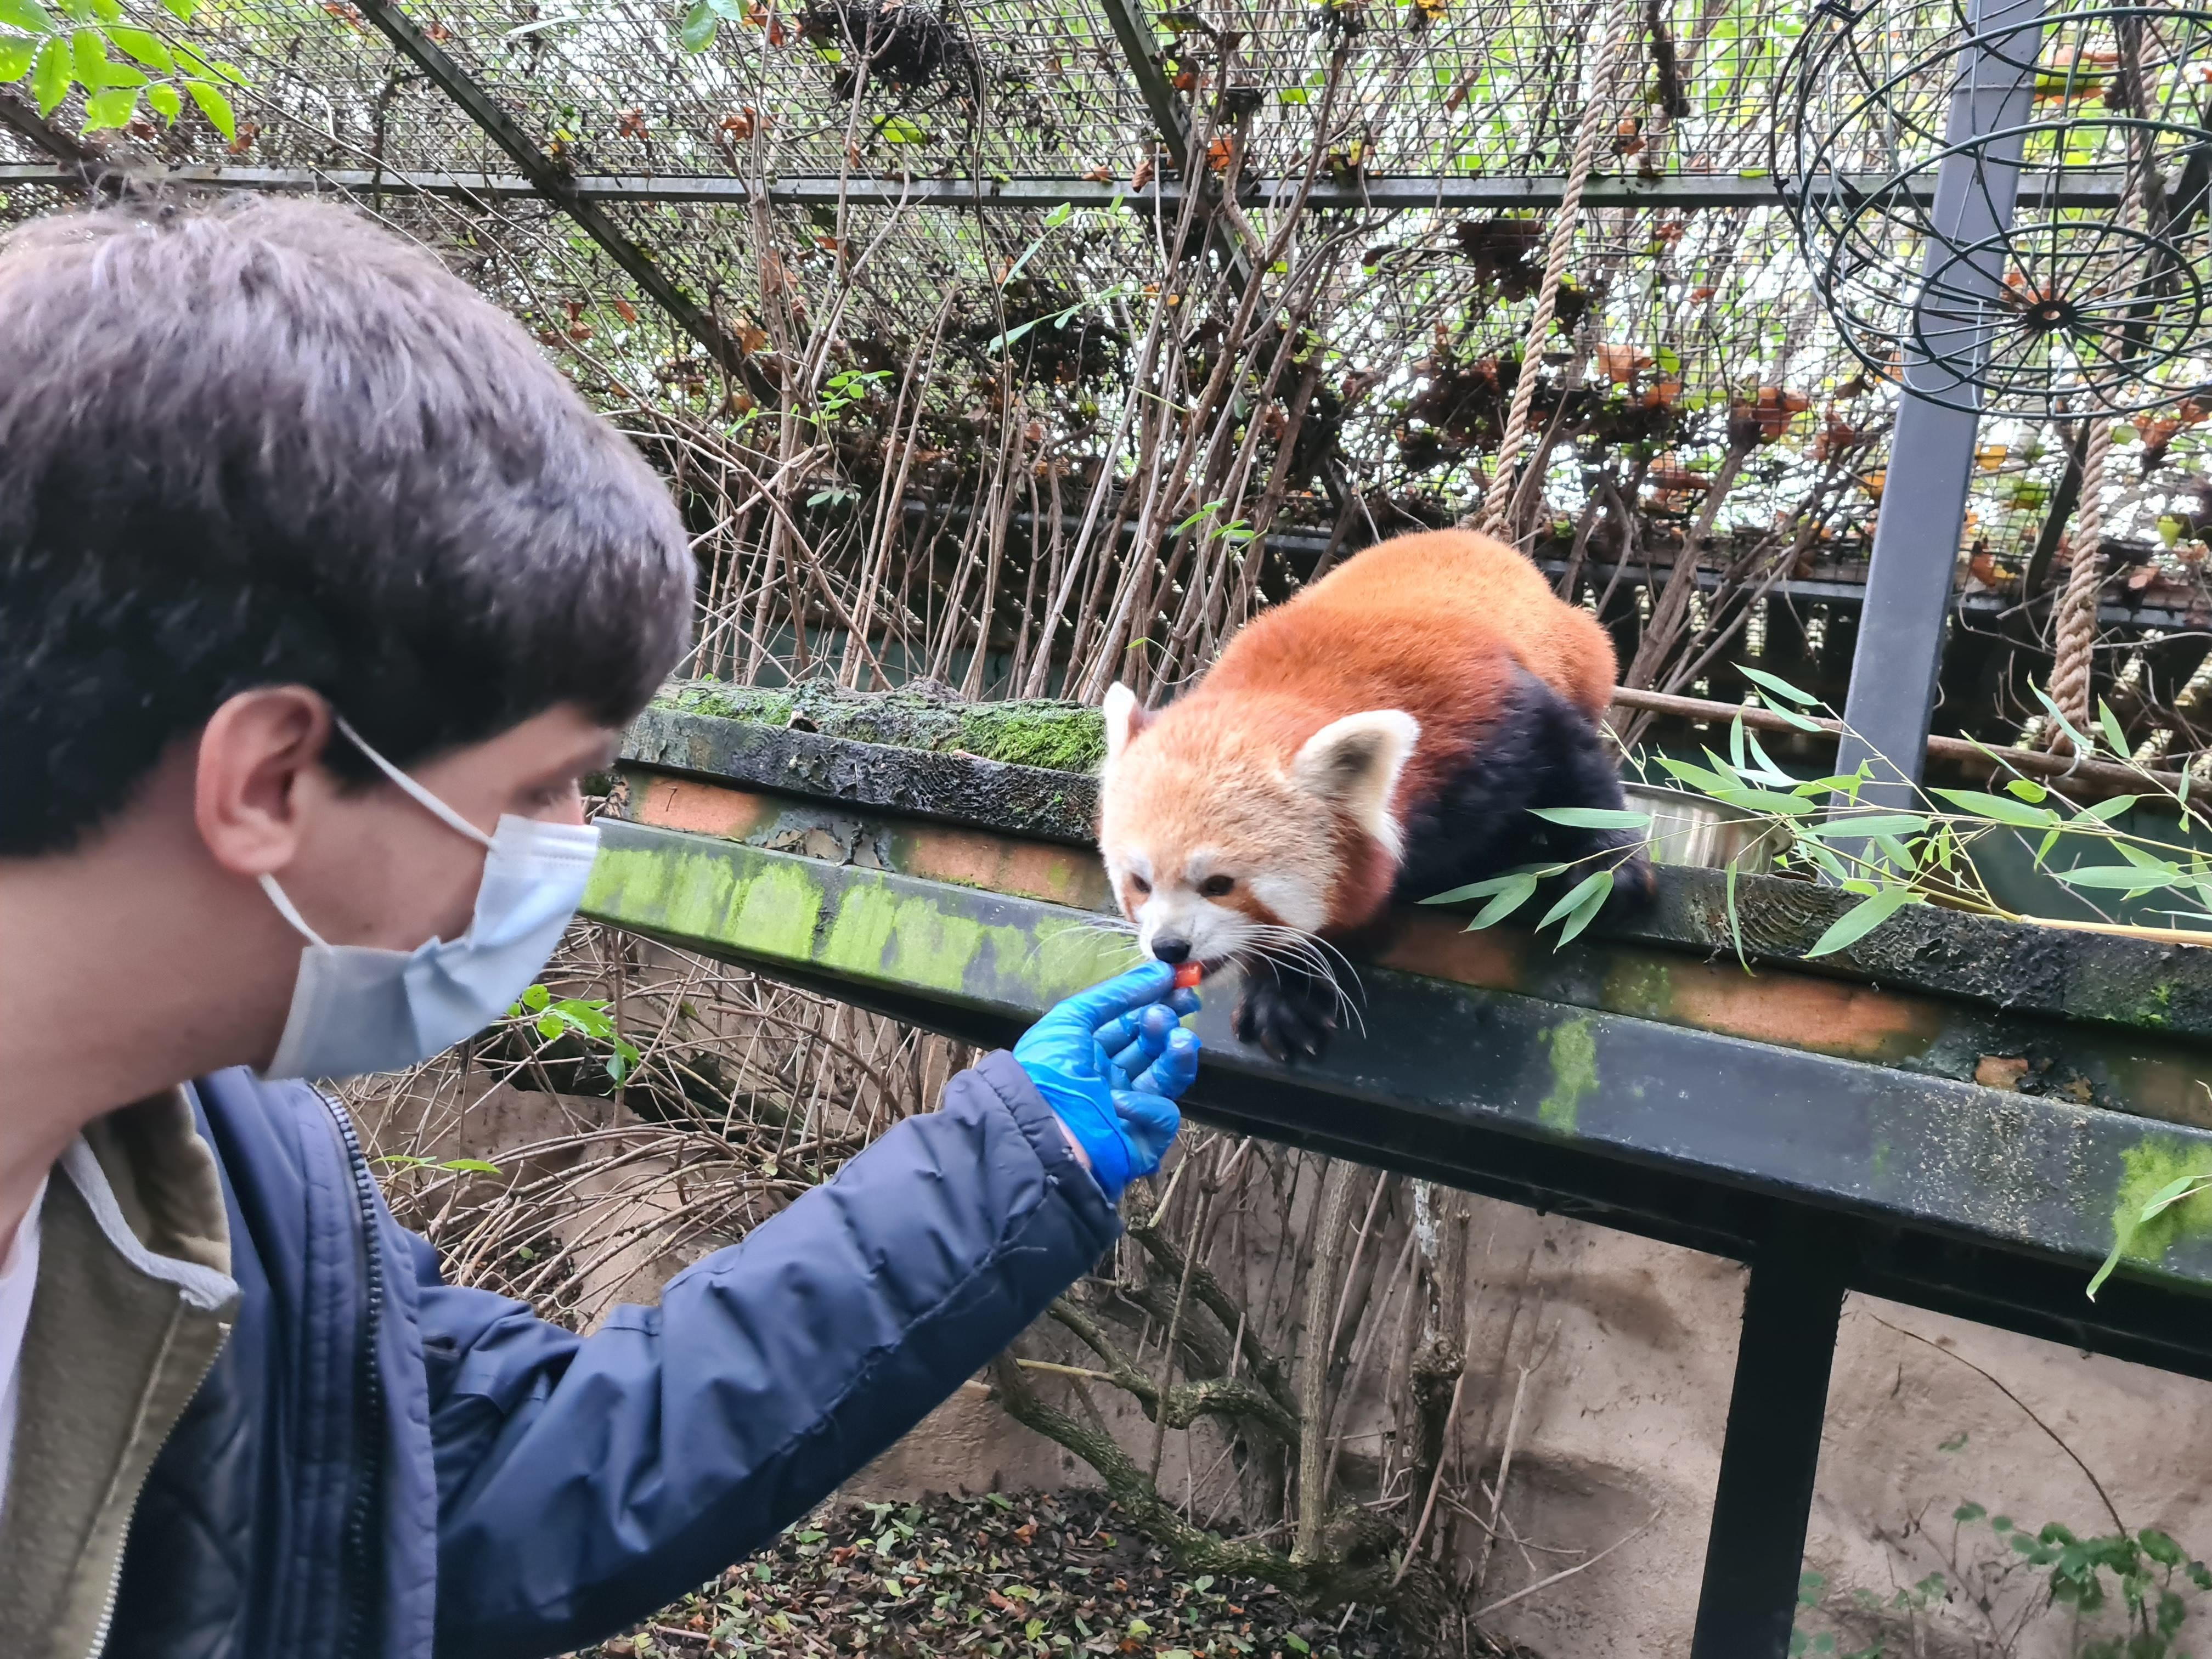 Please Follow Iloveredpandas Got To Experience My Dream Of Meeting A Red Panda They Re So Cute Redpanda Panda Cutebear Bea Red Panda Panda Bear Cute Bears